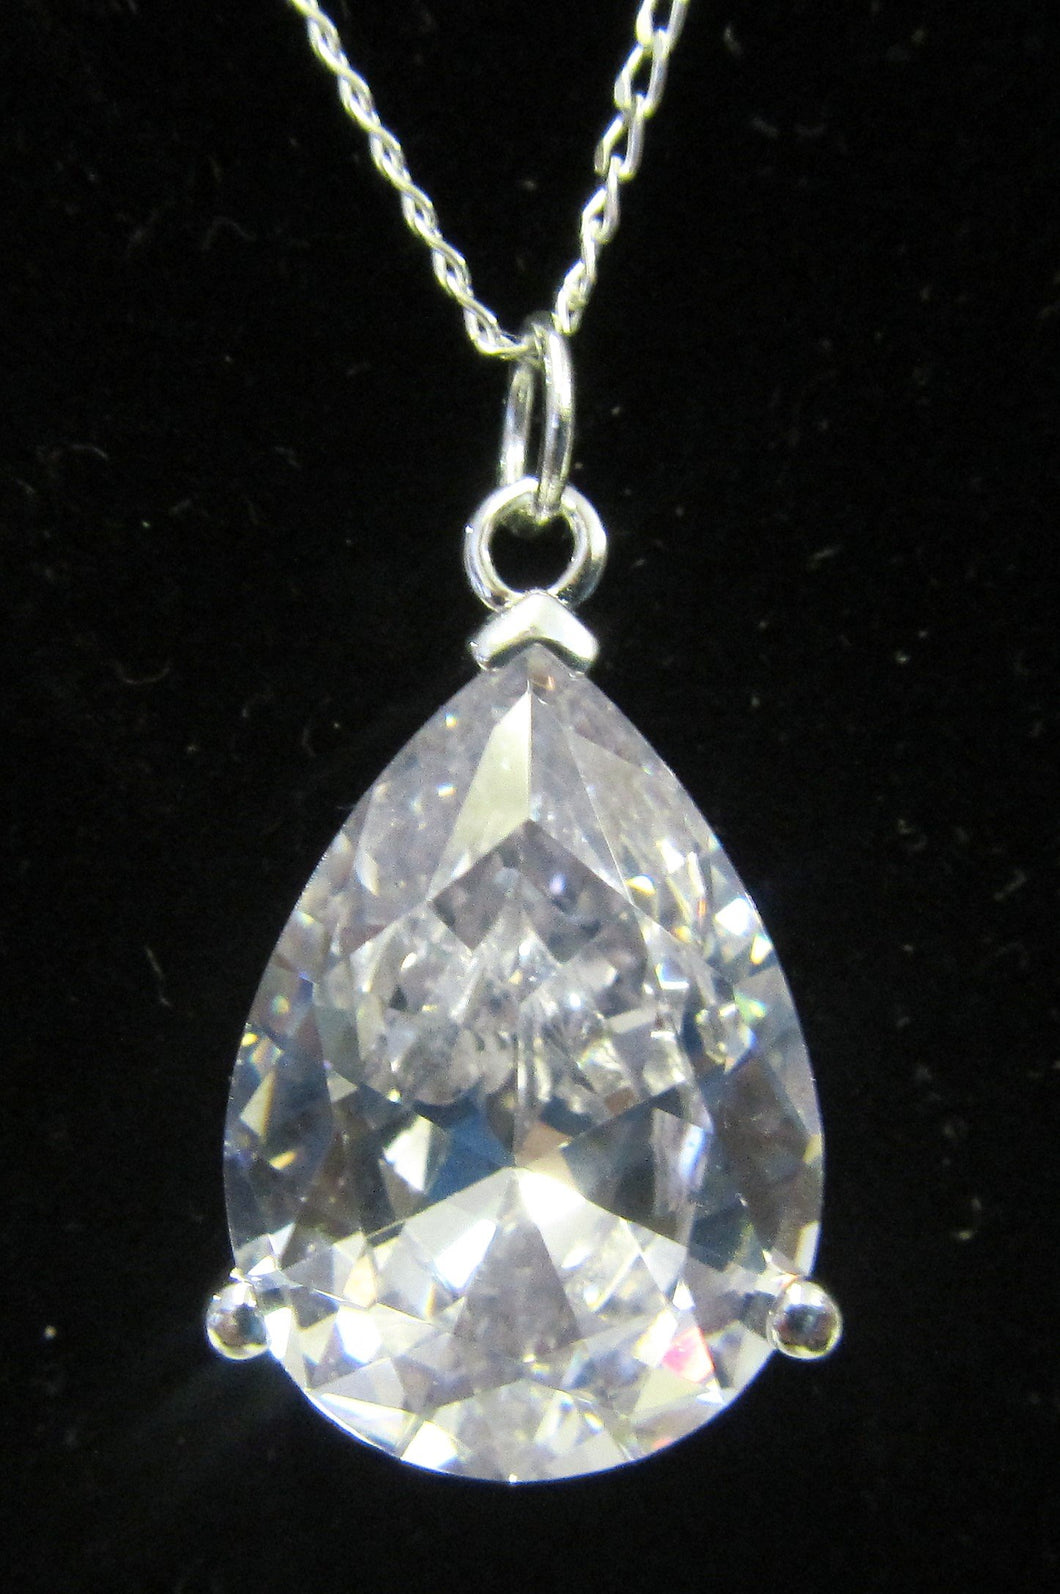 Handcrafted 925 sterling silver necklace large cubic zirconia drop pendant